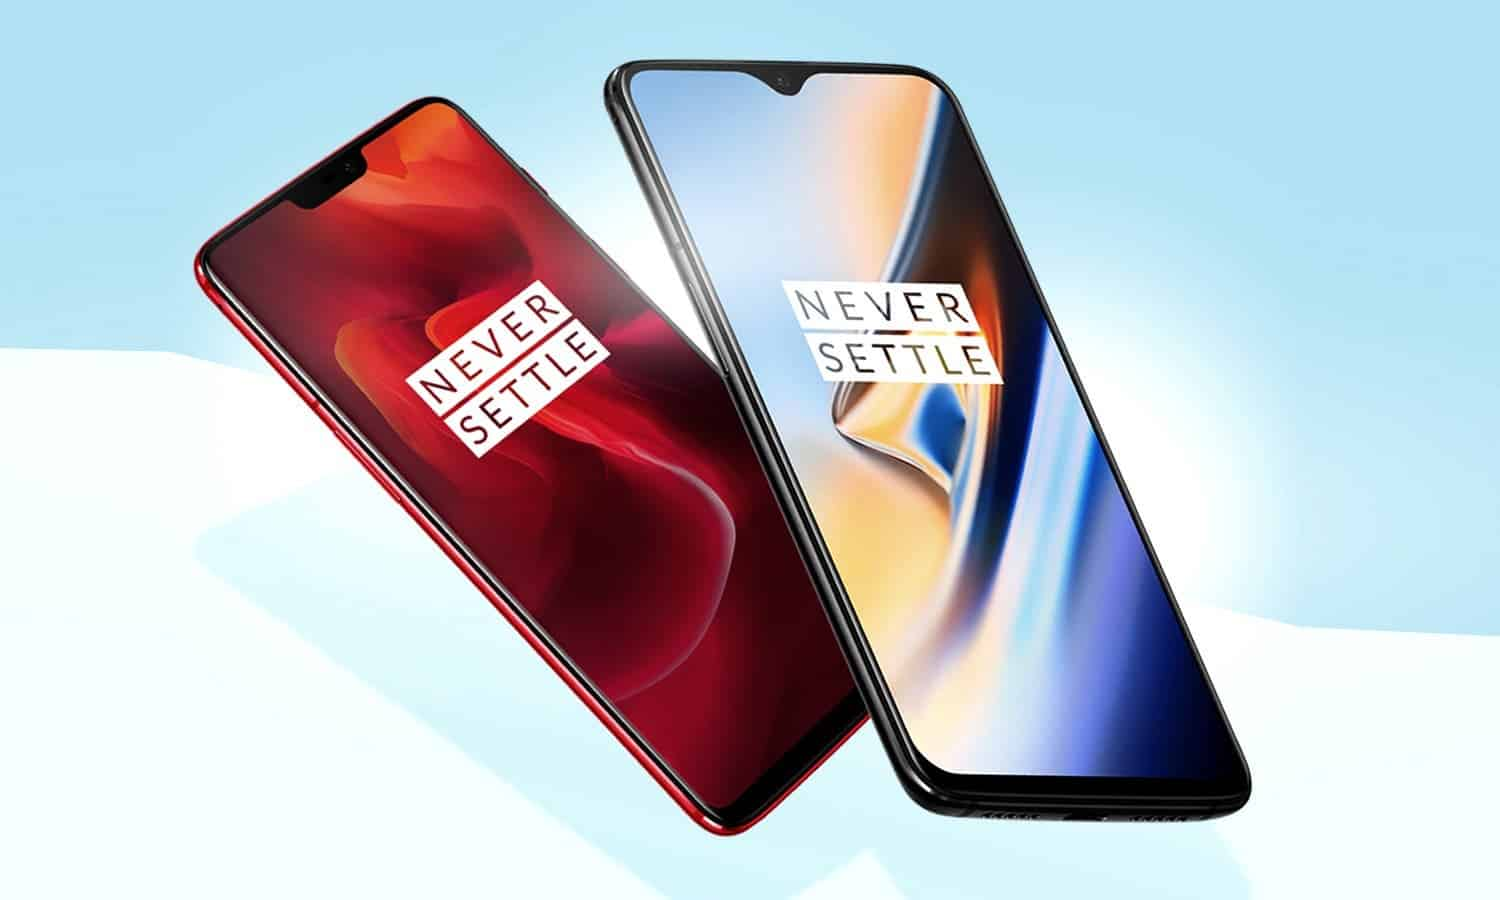 OnePlus 8 Pro 5G: Save £200 with fantastic Black Friday deal